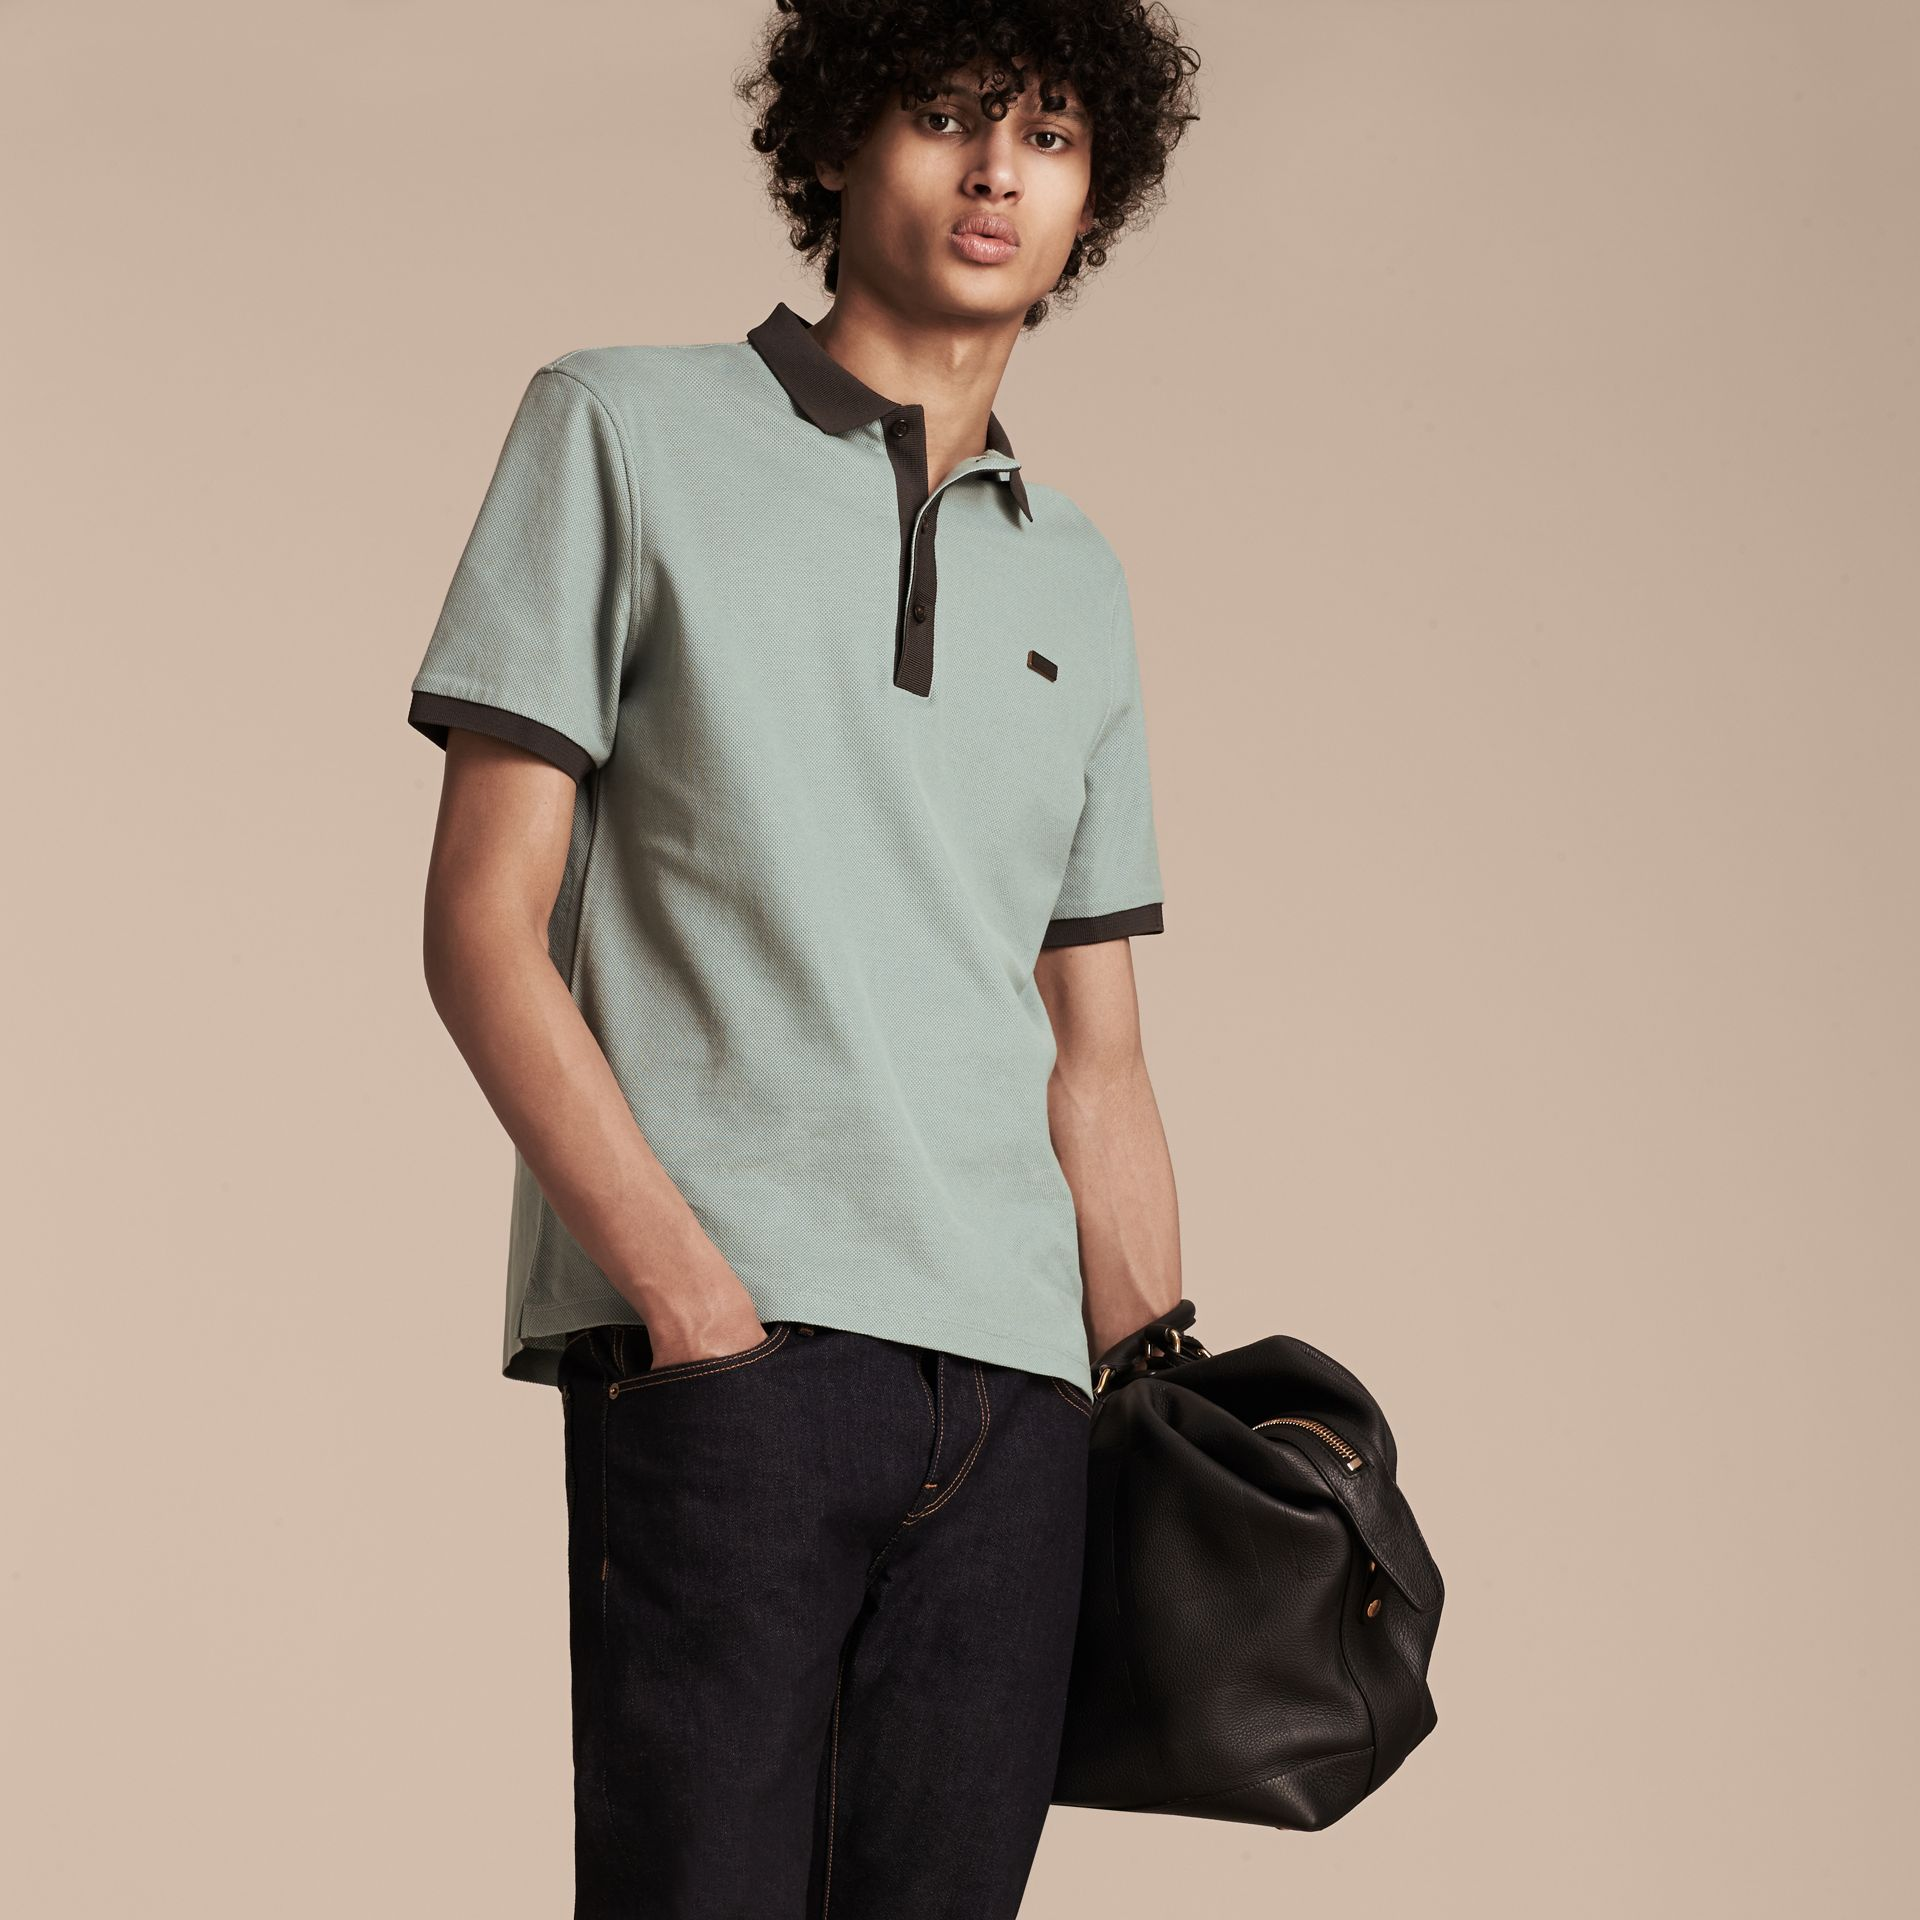 Eucalyptus green/charcoal Mercerised Cotton Piqué Polo Shirt Eucalyptus Green/charcoal - gallery image 5